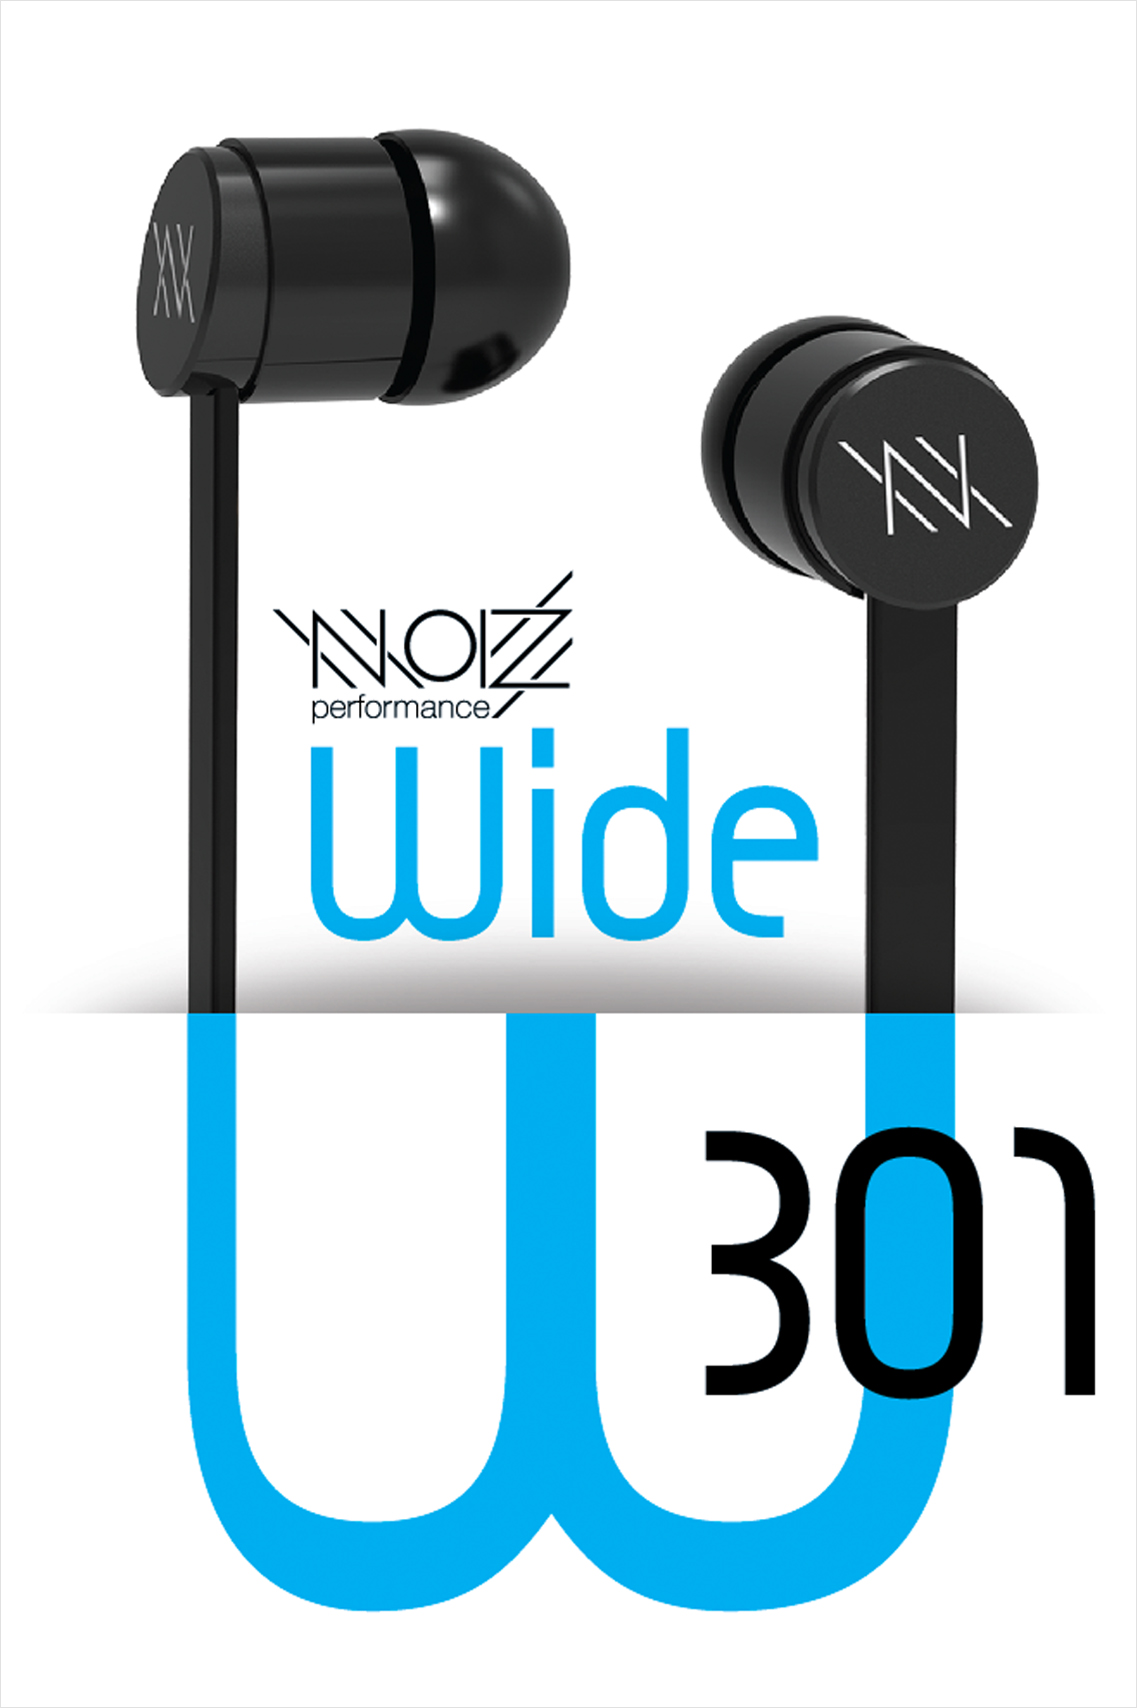 Гарнитура NOIZ Performance W-301 Wide Jet Black цены онлайн